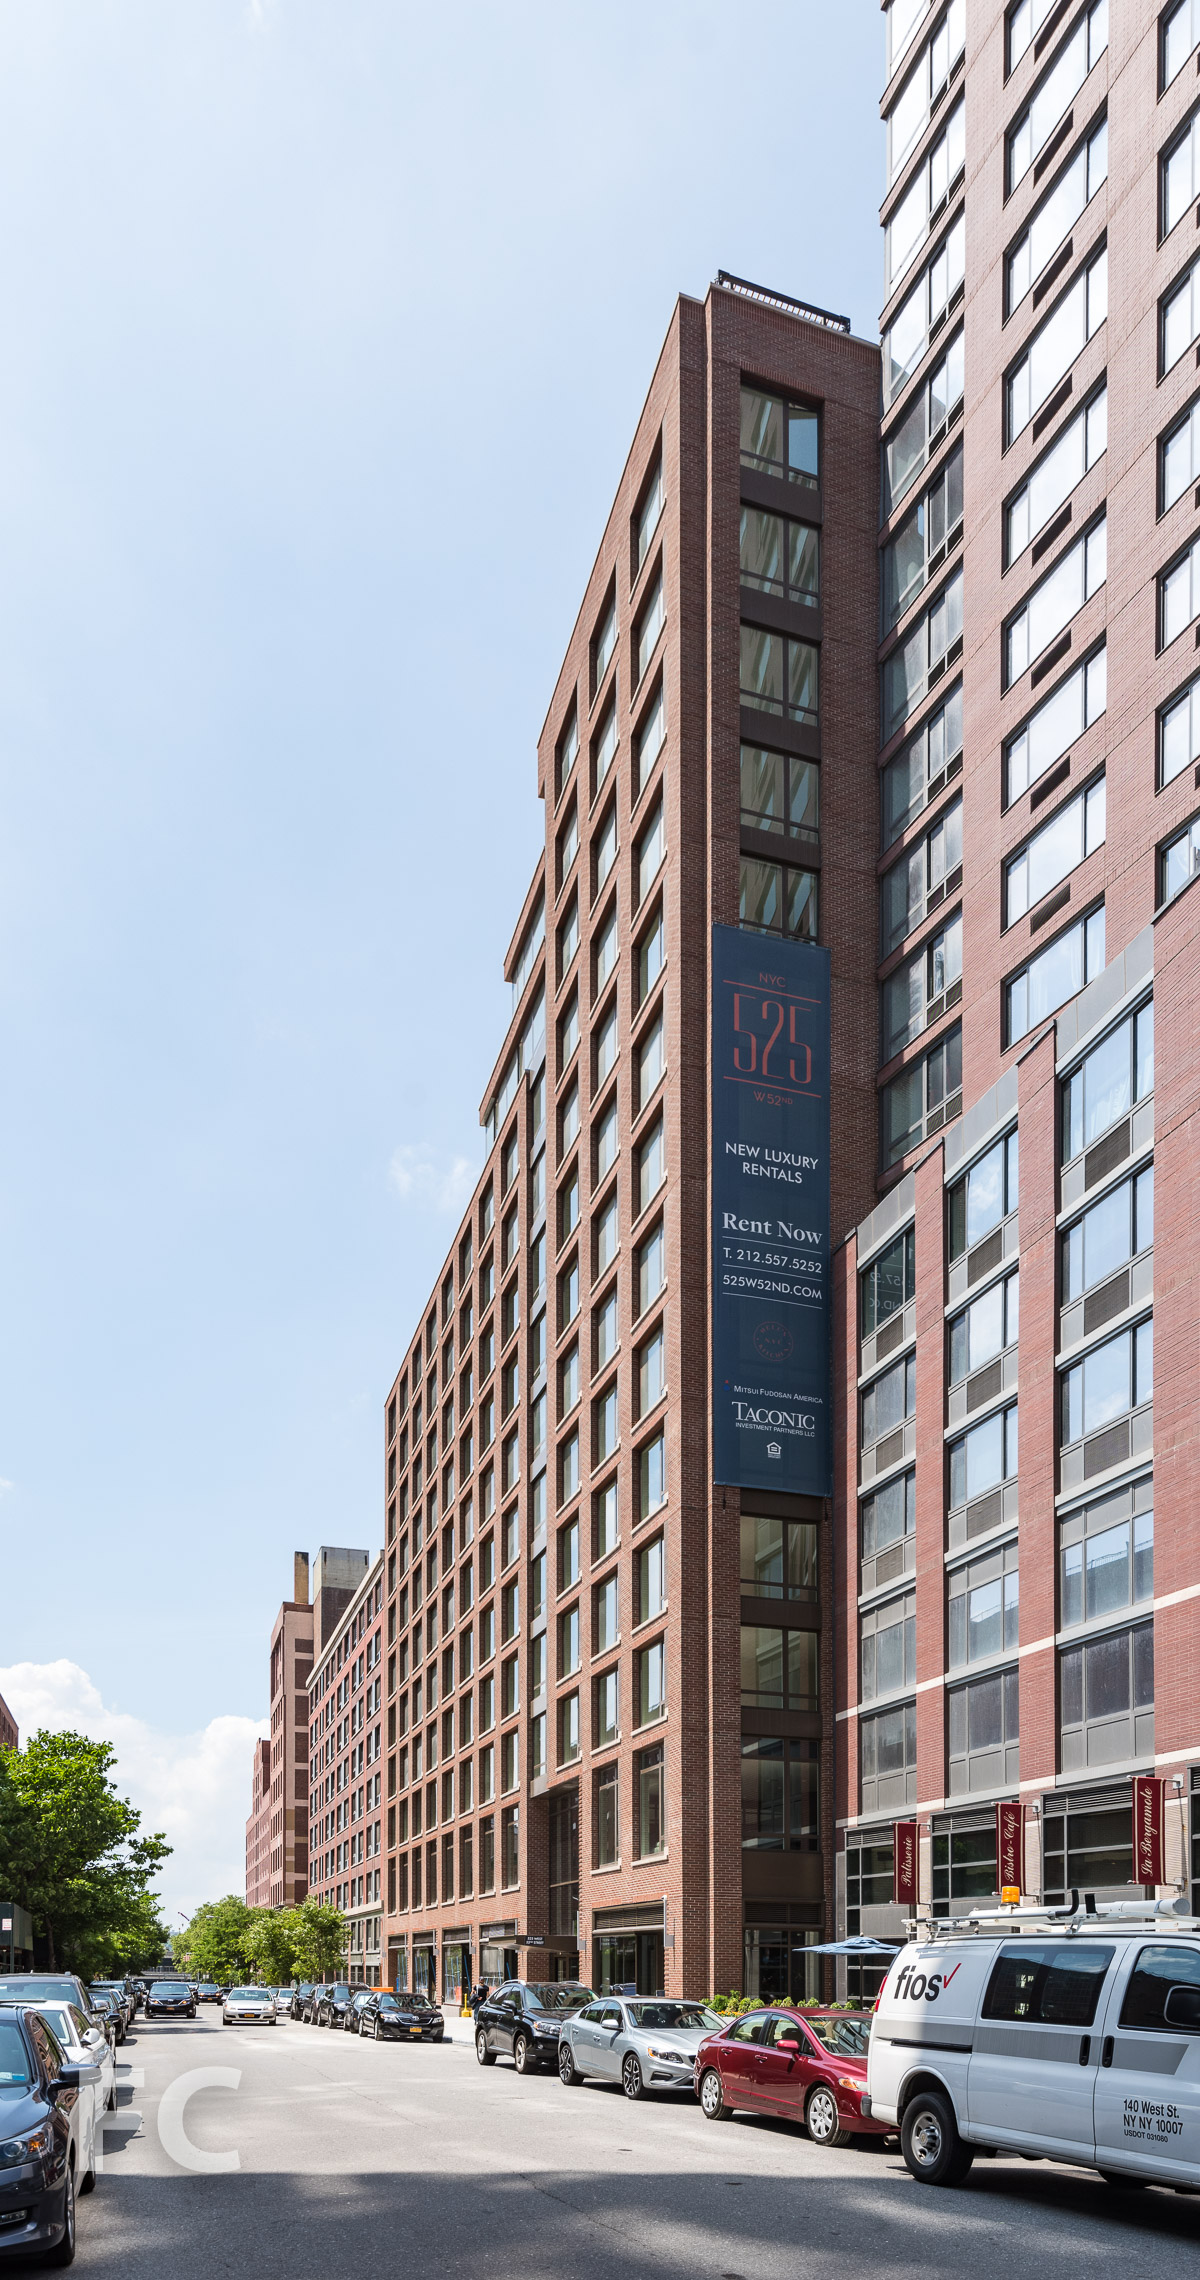 Southeast corner of the south tower from West 52nd Street.